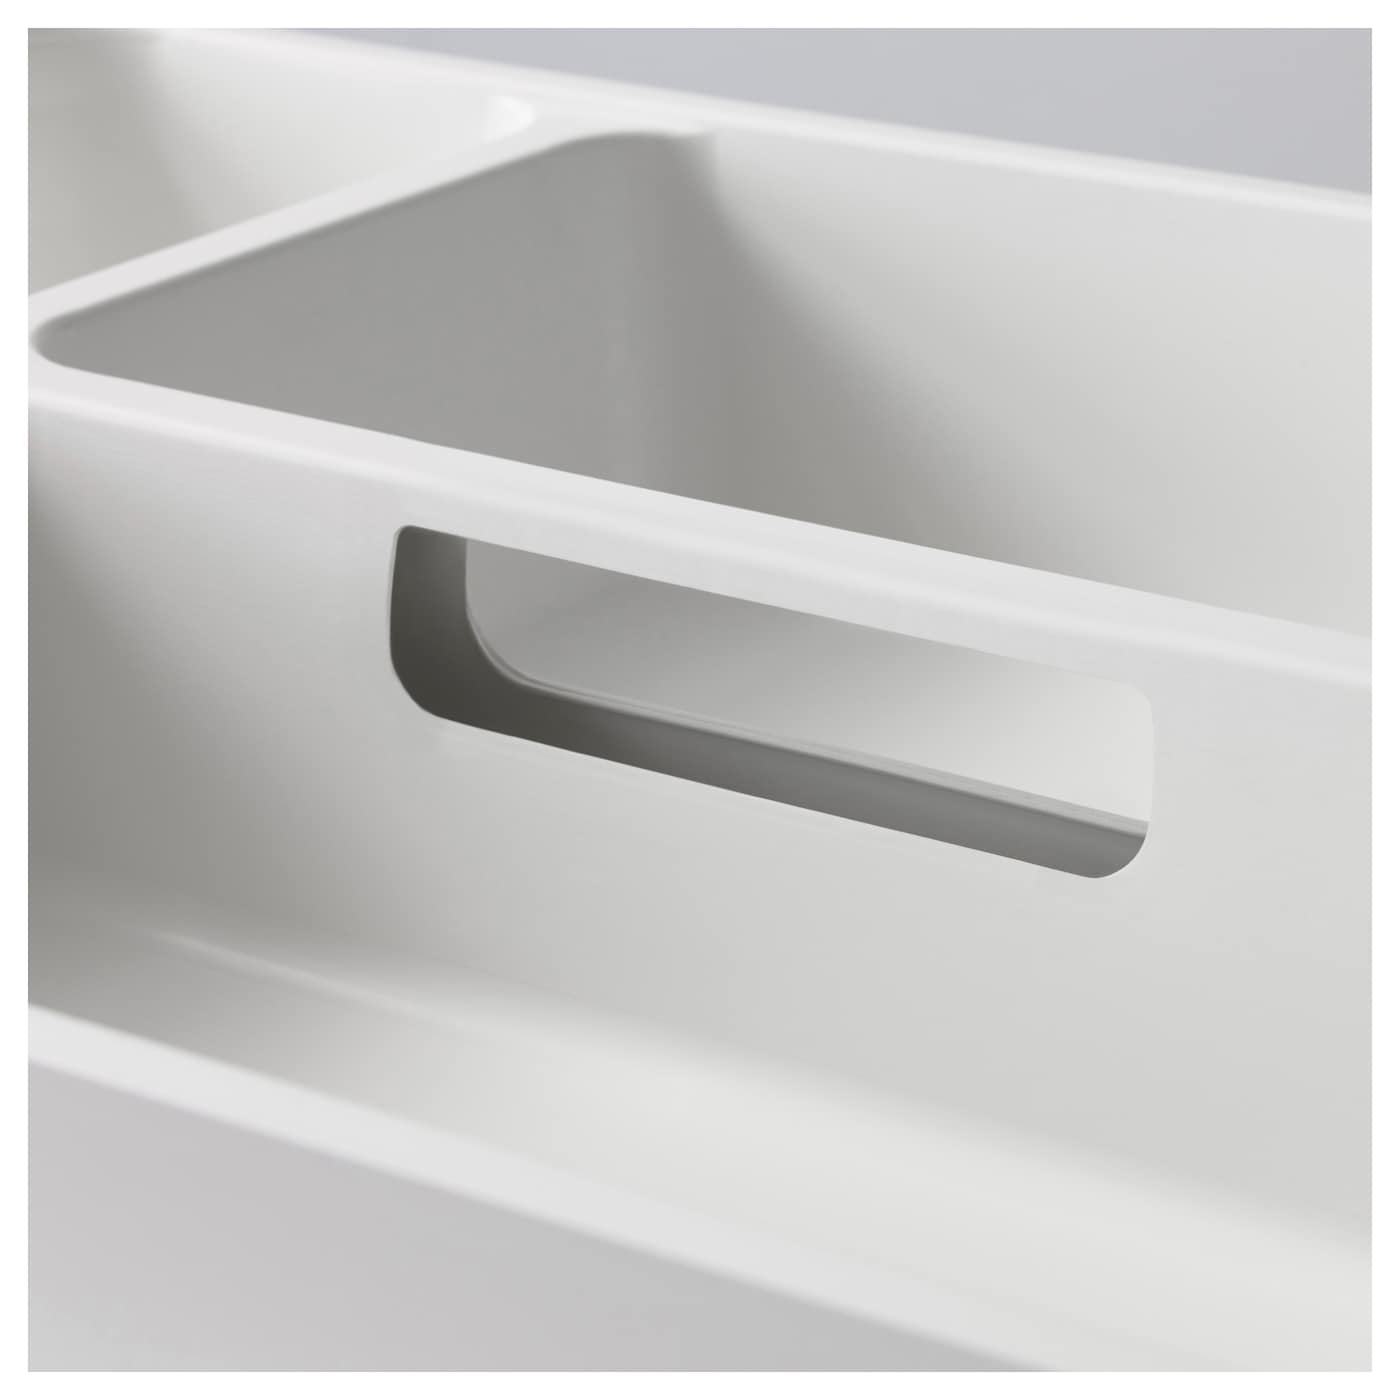 IKEA ALGOT insert for box Perfect for your tools, accessories and hobby things.